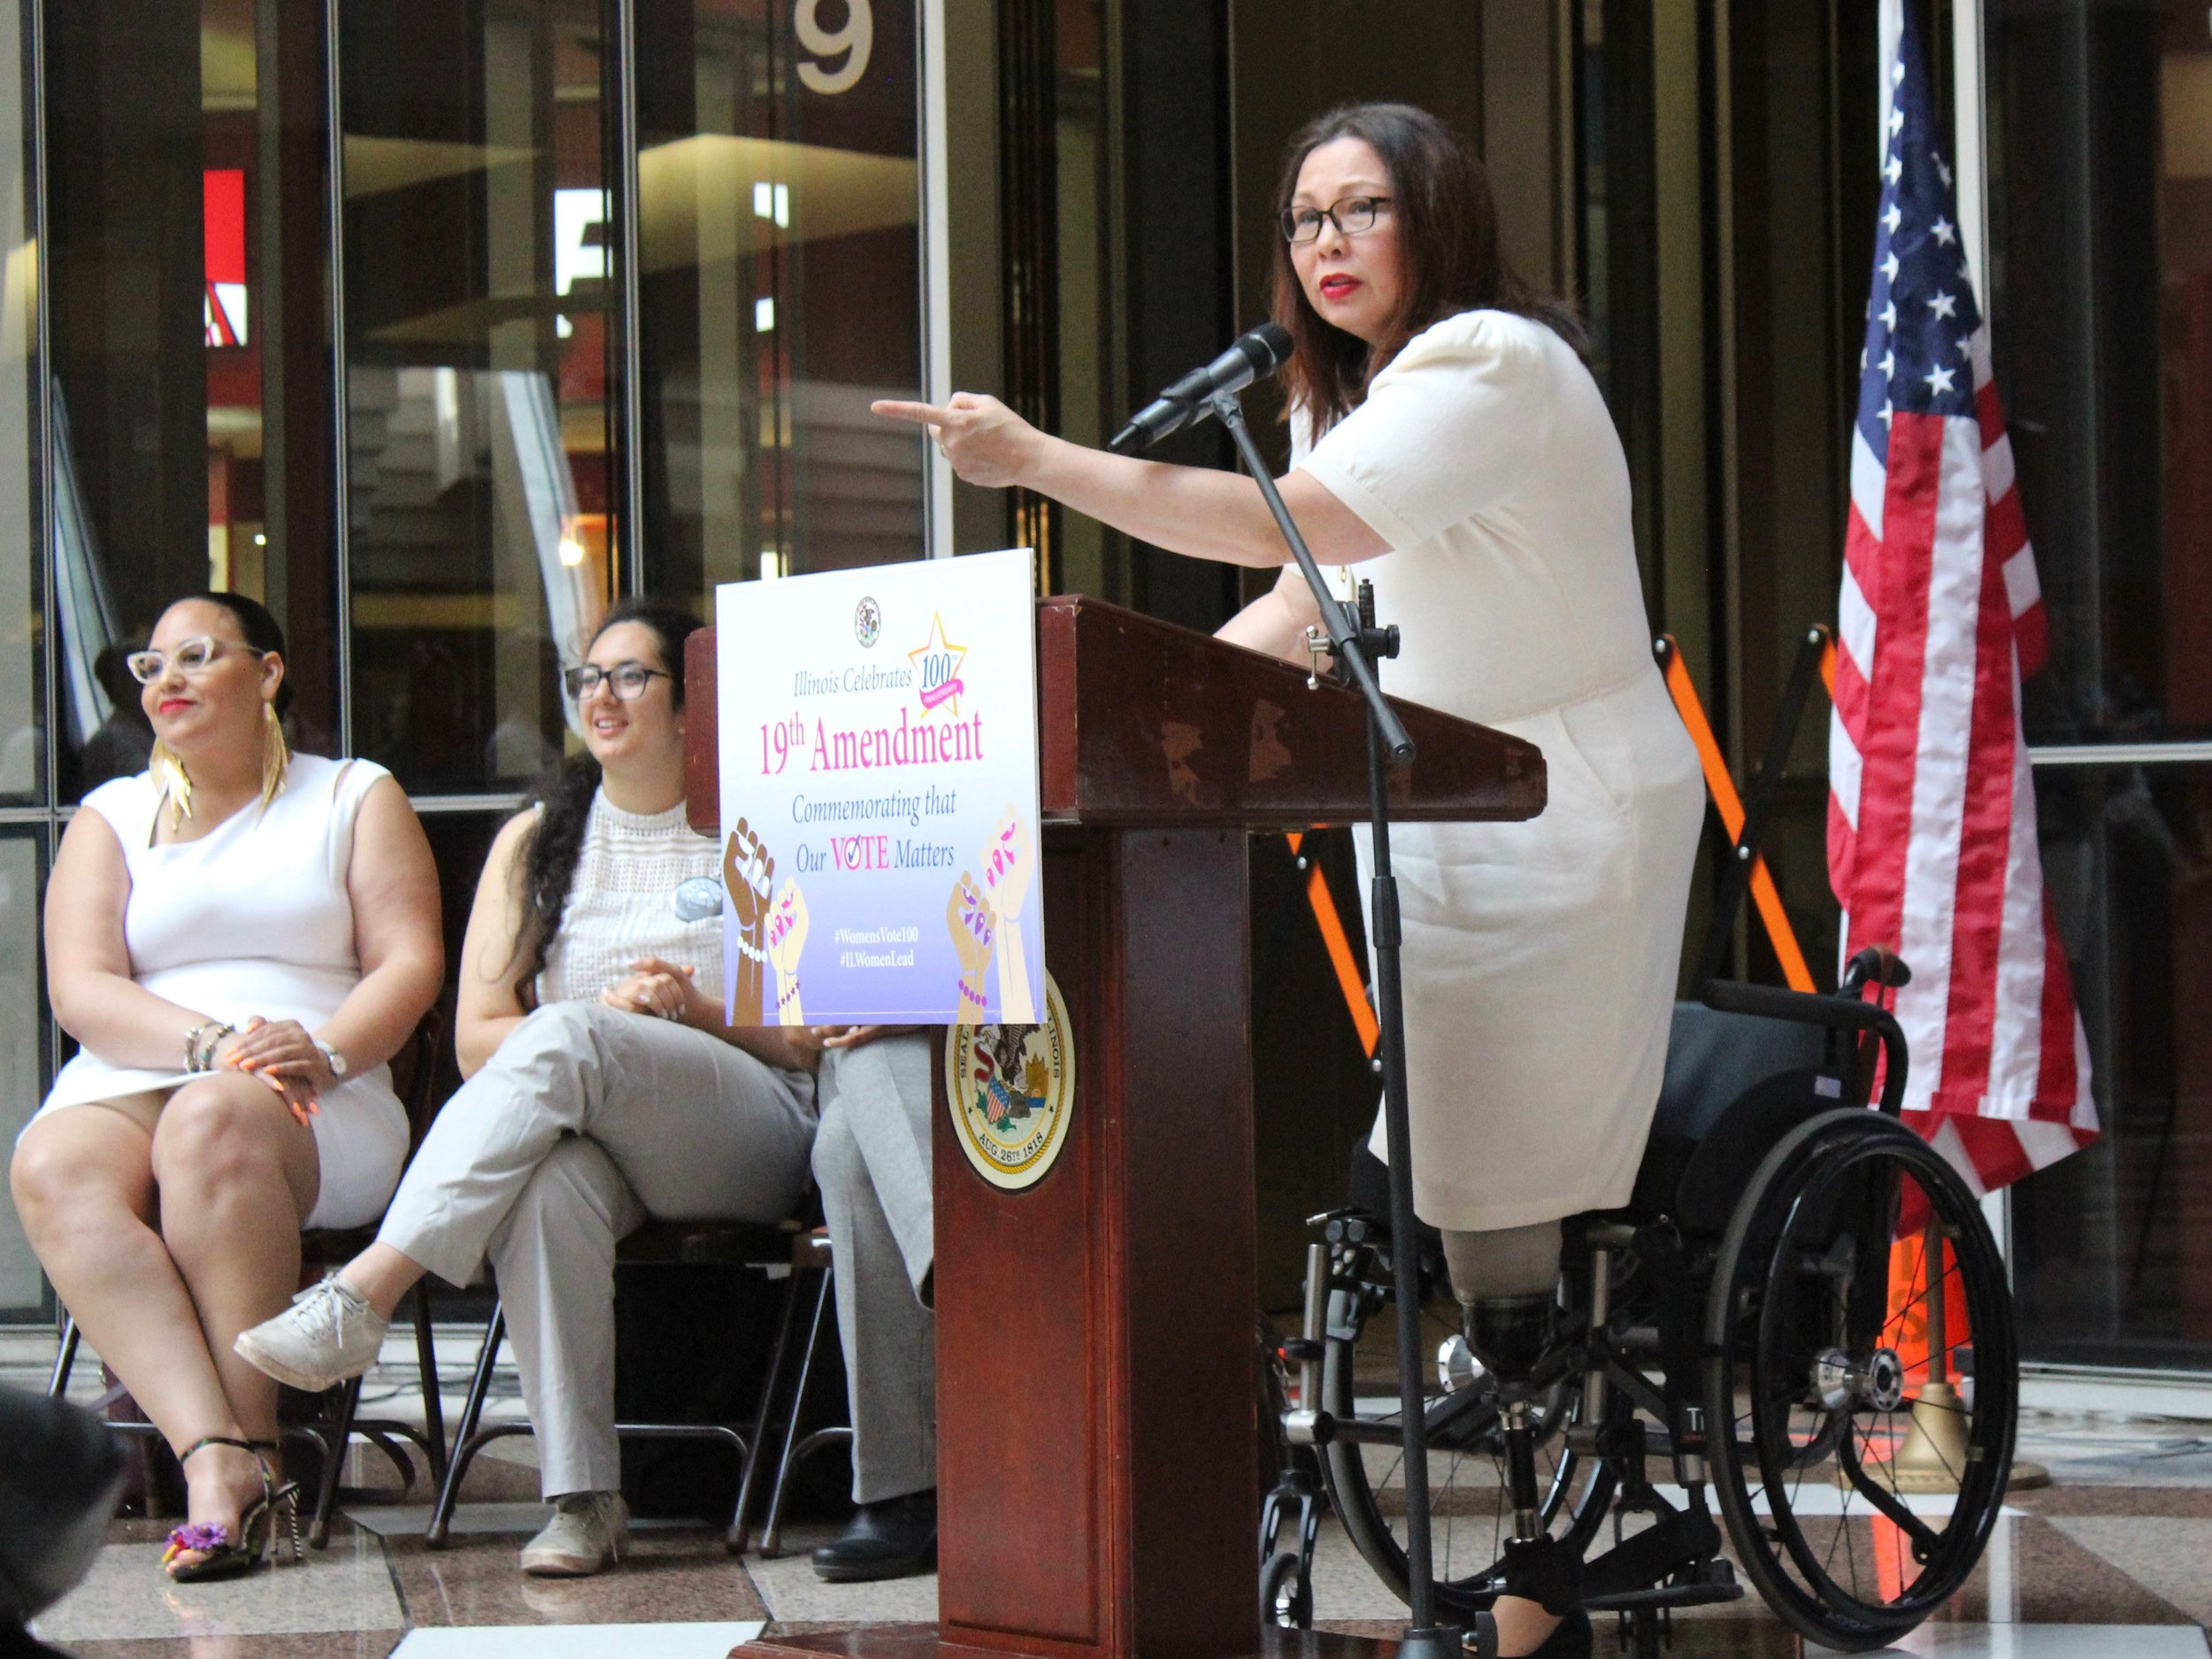 U.S. Sen. Tammy Duckworth won concessions from the Trump administration on Amtrak service in Illinois. (Ted Cox/One Illinois)